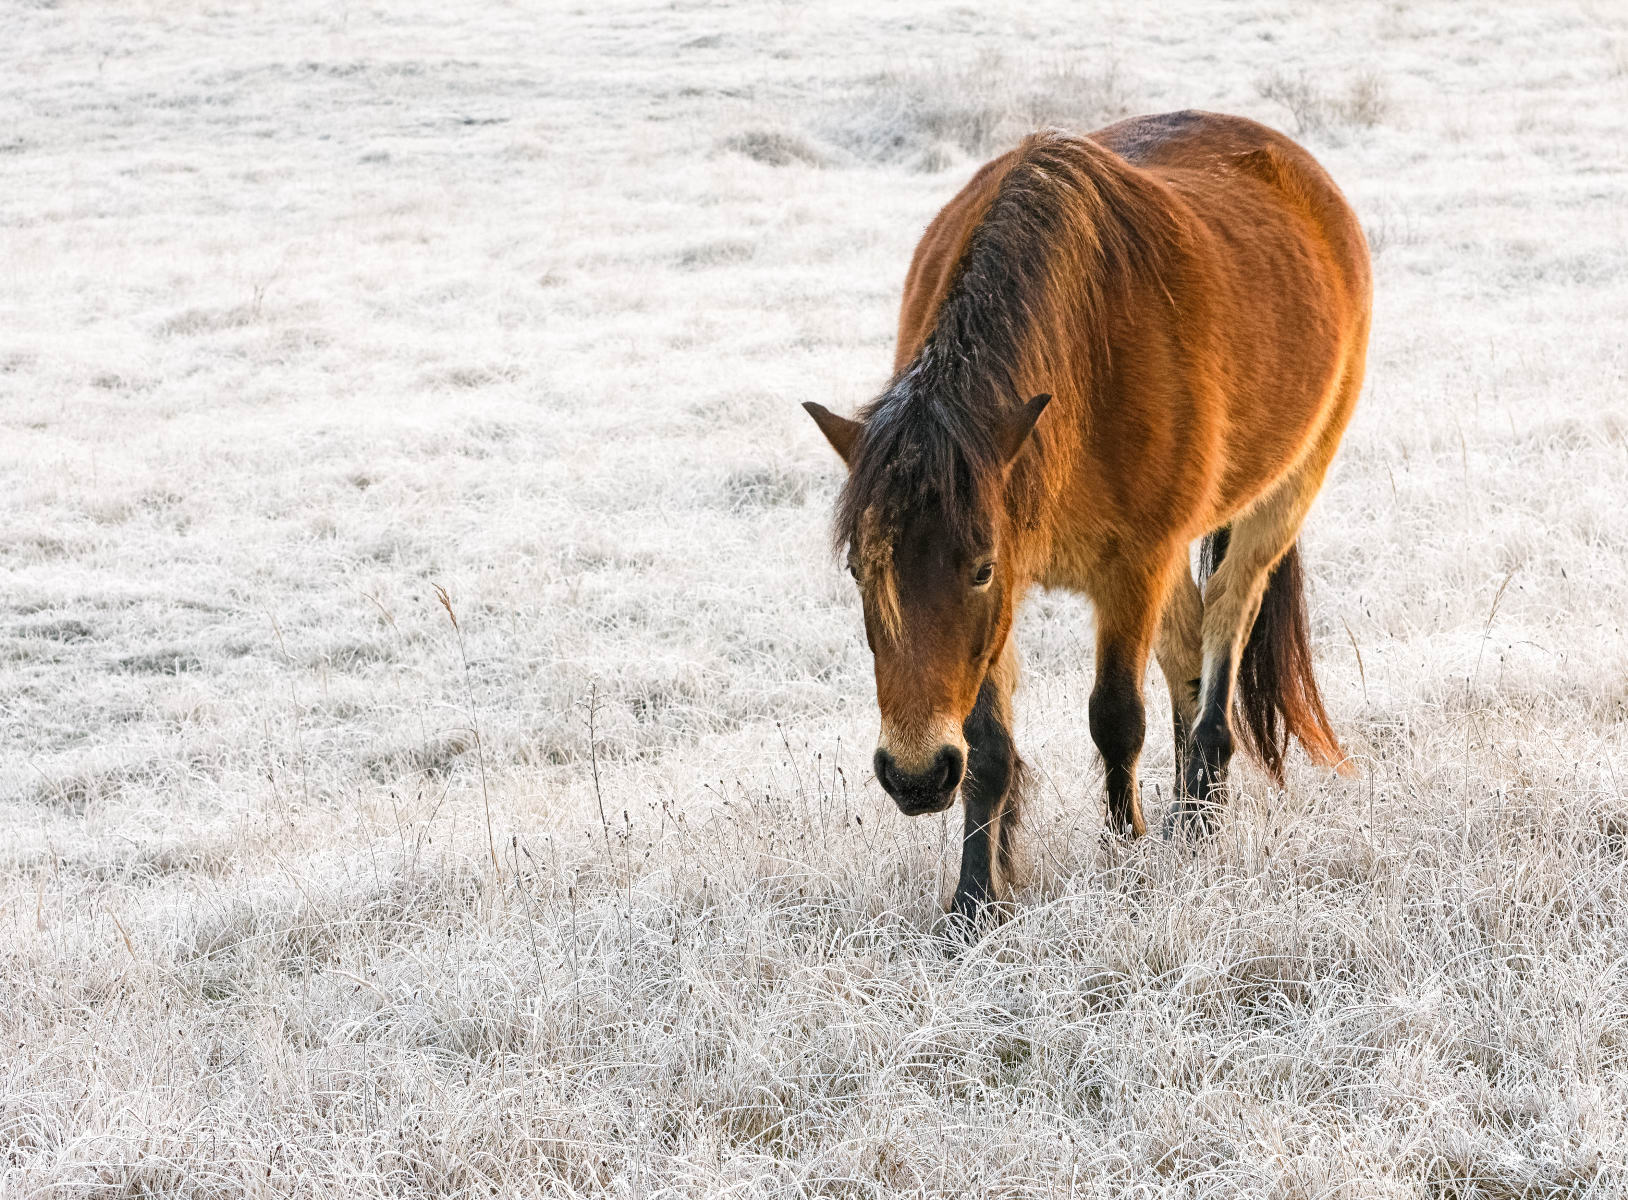 Bay Horse in Frosty Field